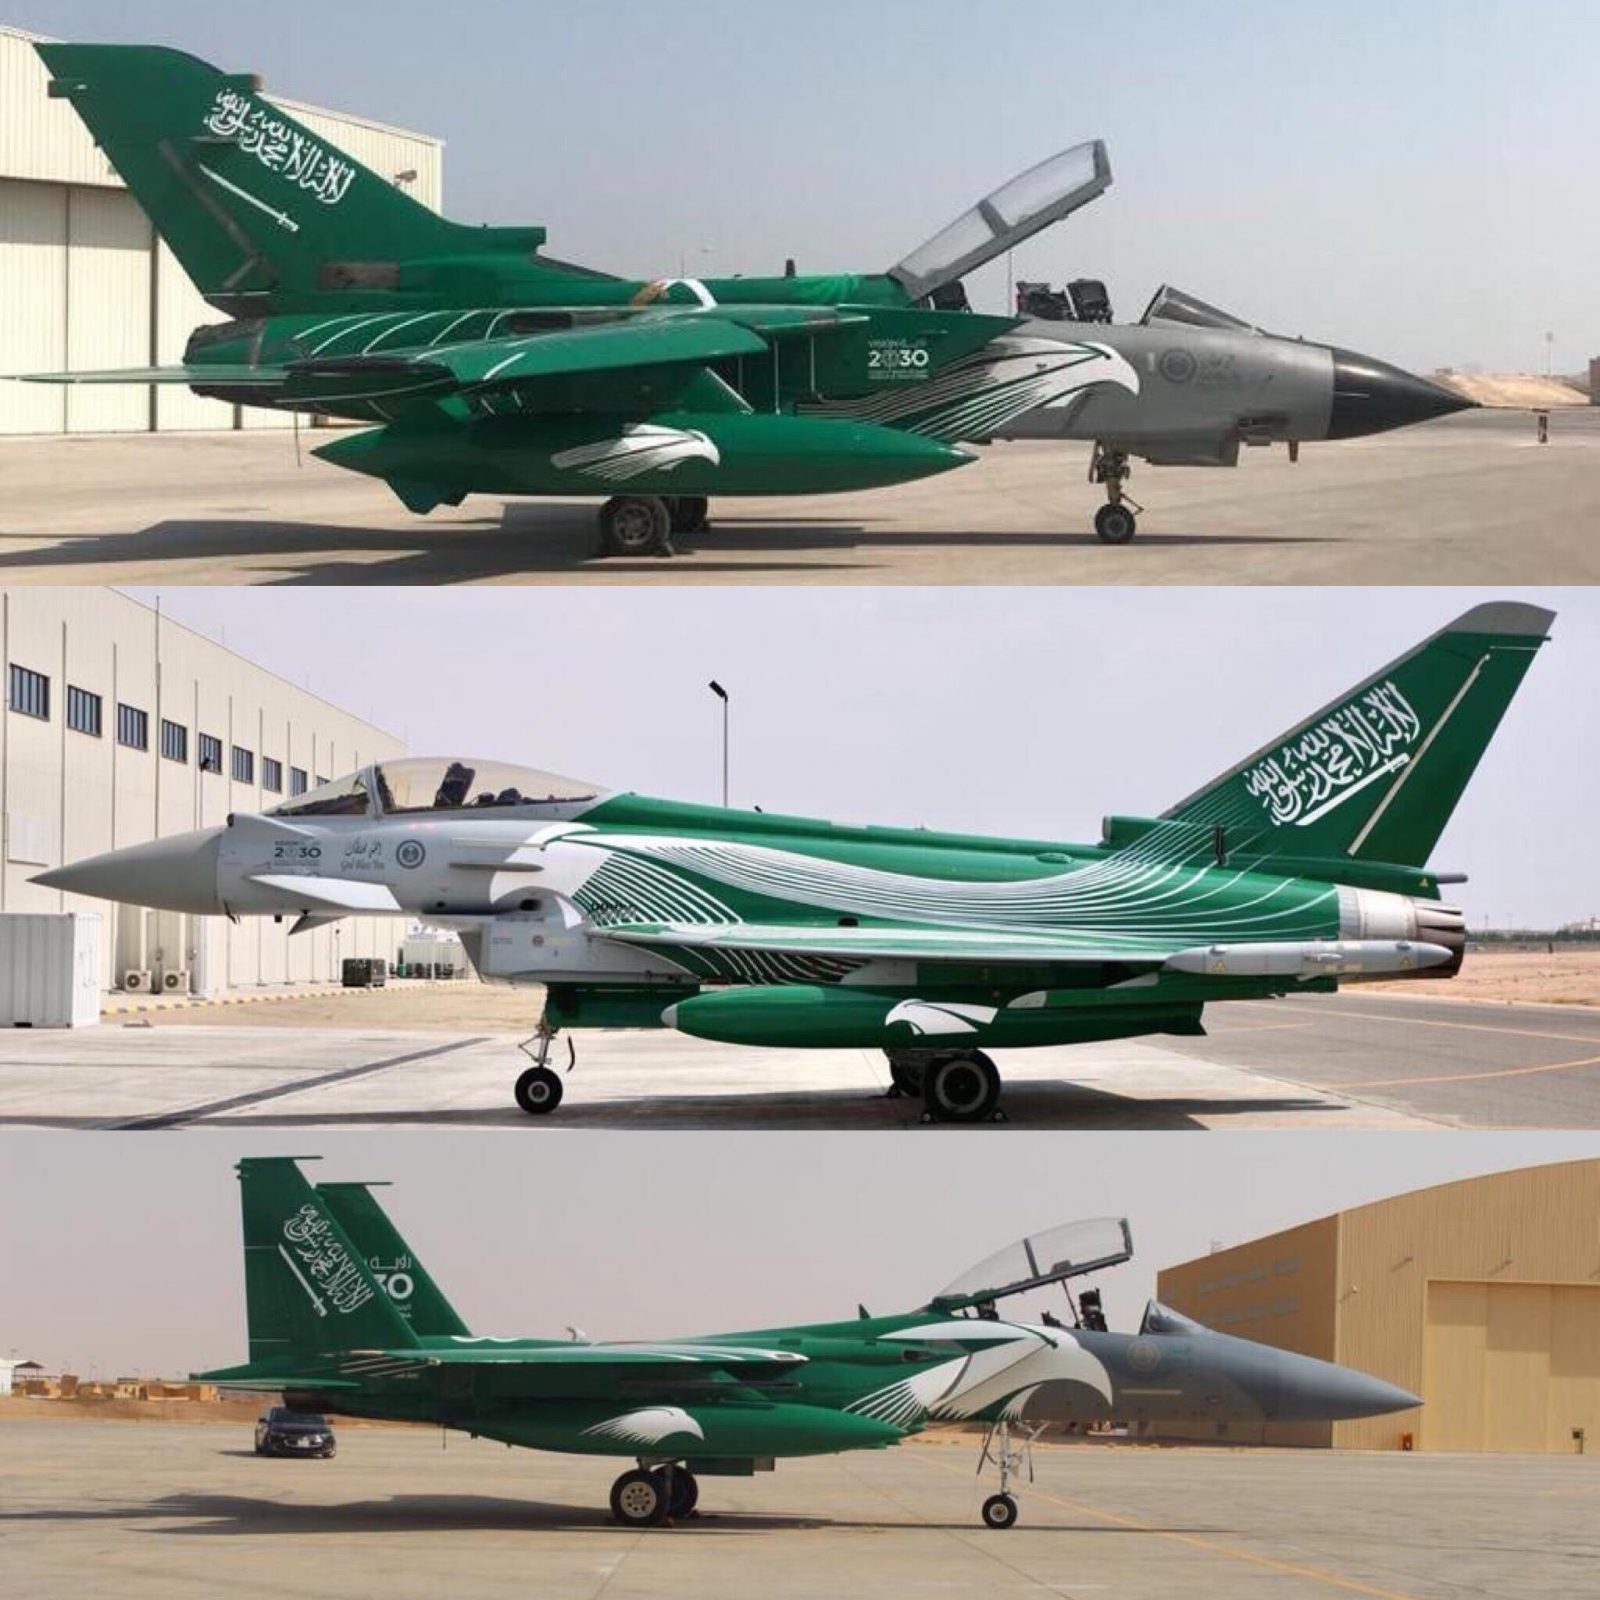 RSAF Special Color Jets For Kingdom's 88th National Day Celebrations